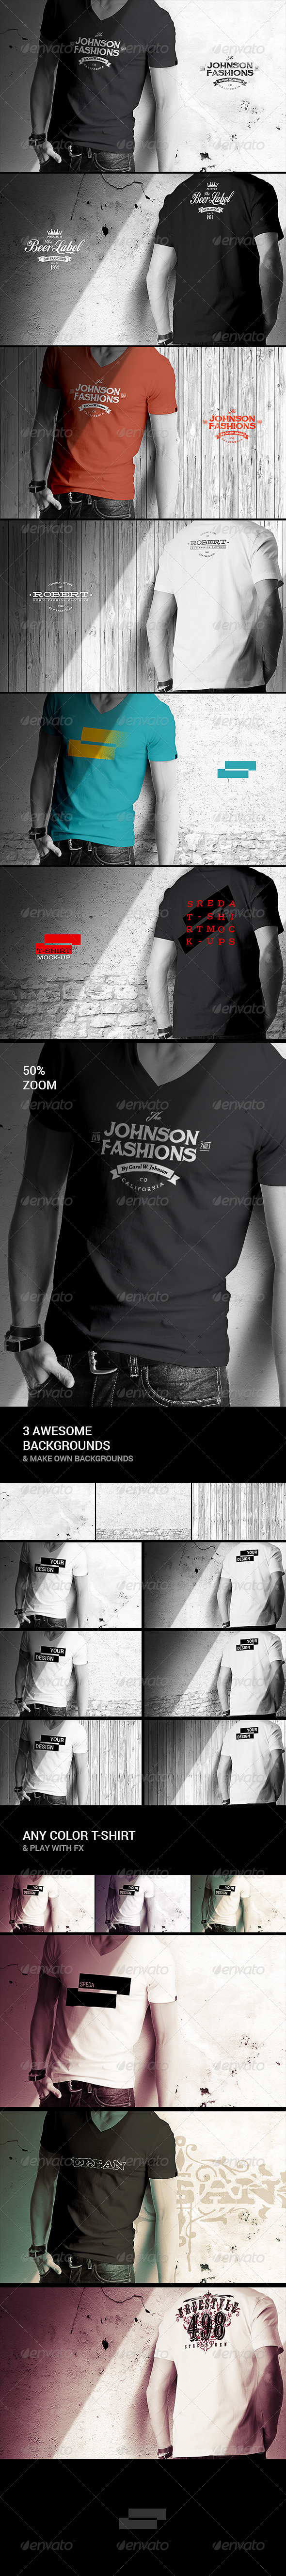 GraphicRiver Mens T-shirt Mock-up 8498447